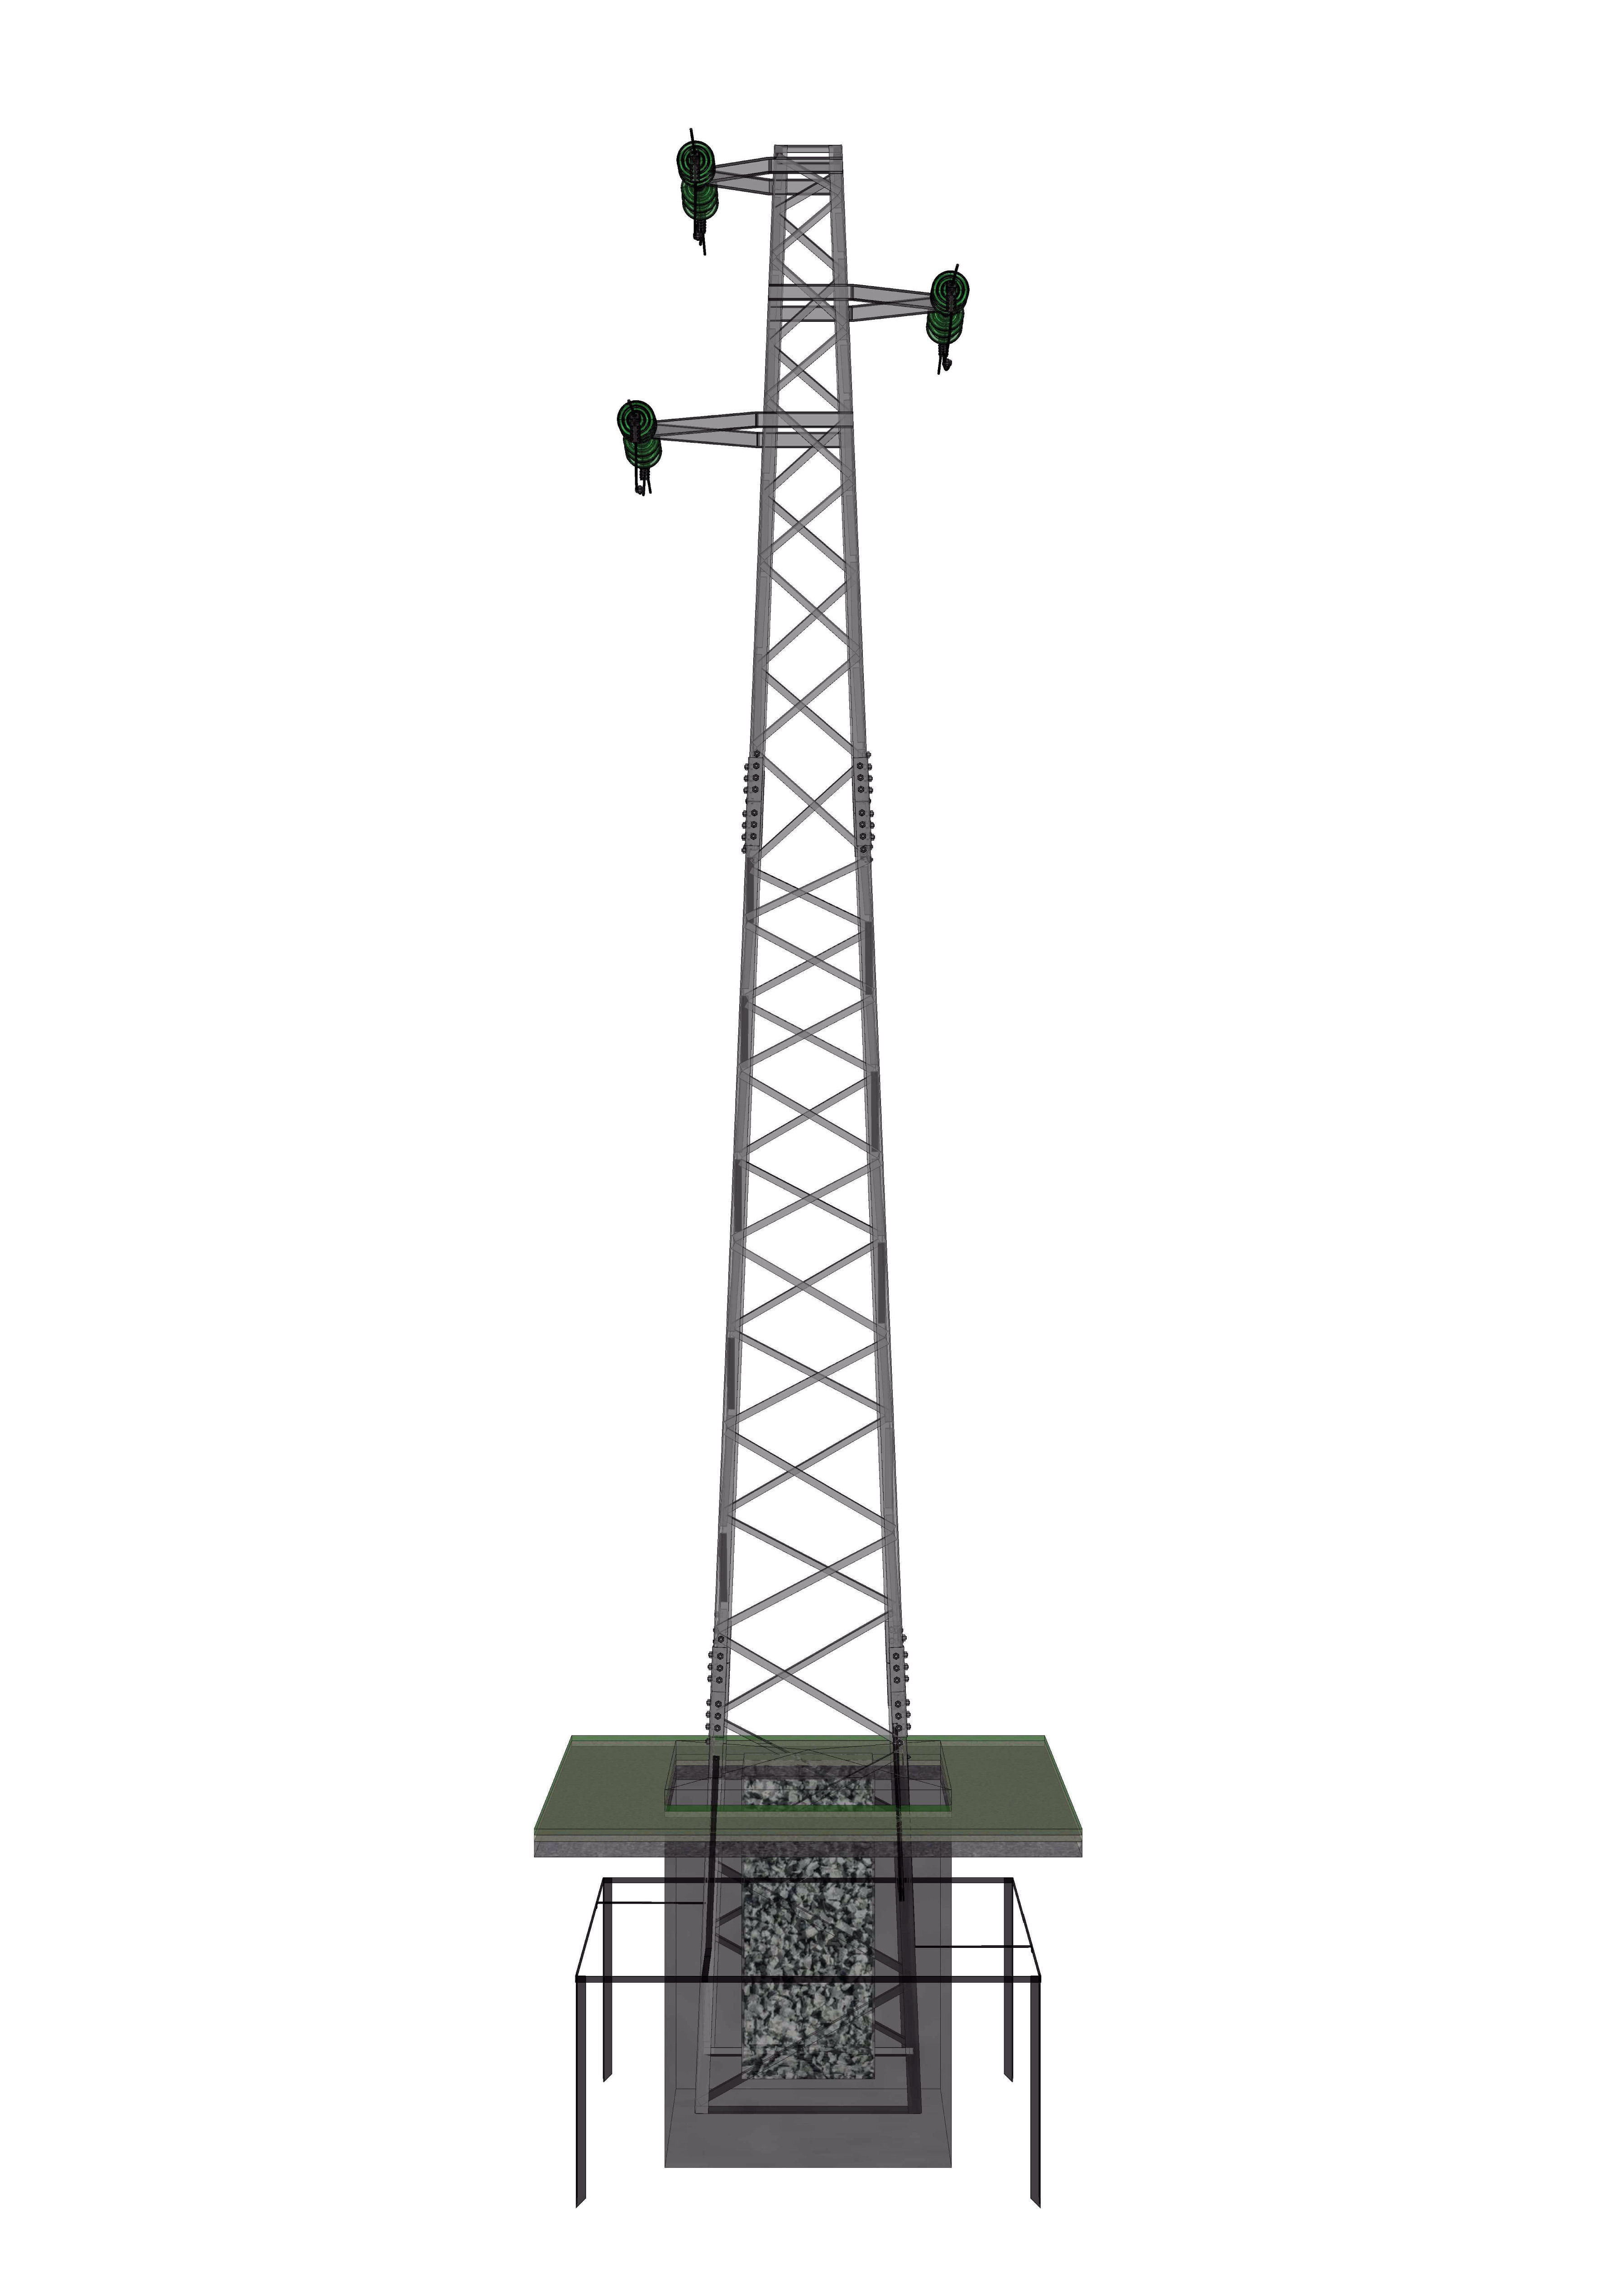 Voltage Overhead Power Line Tower 951 Free 3d Model Dwg